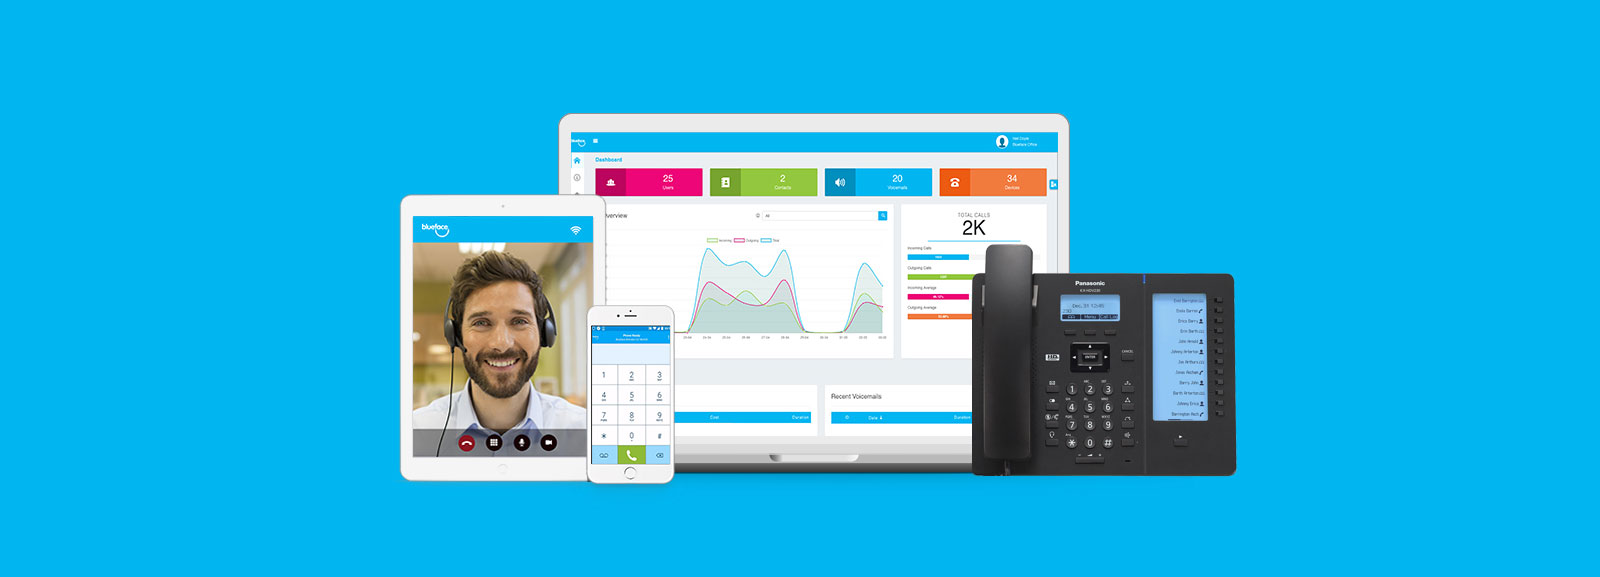 JMAC IT & Office Solutions are now distributors for IP Phone Systems